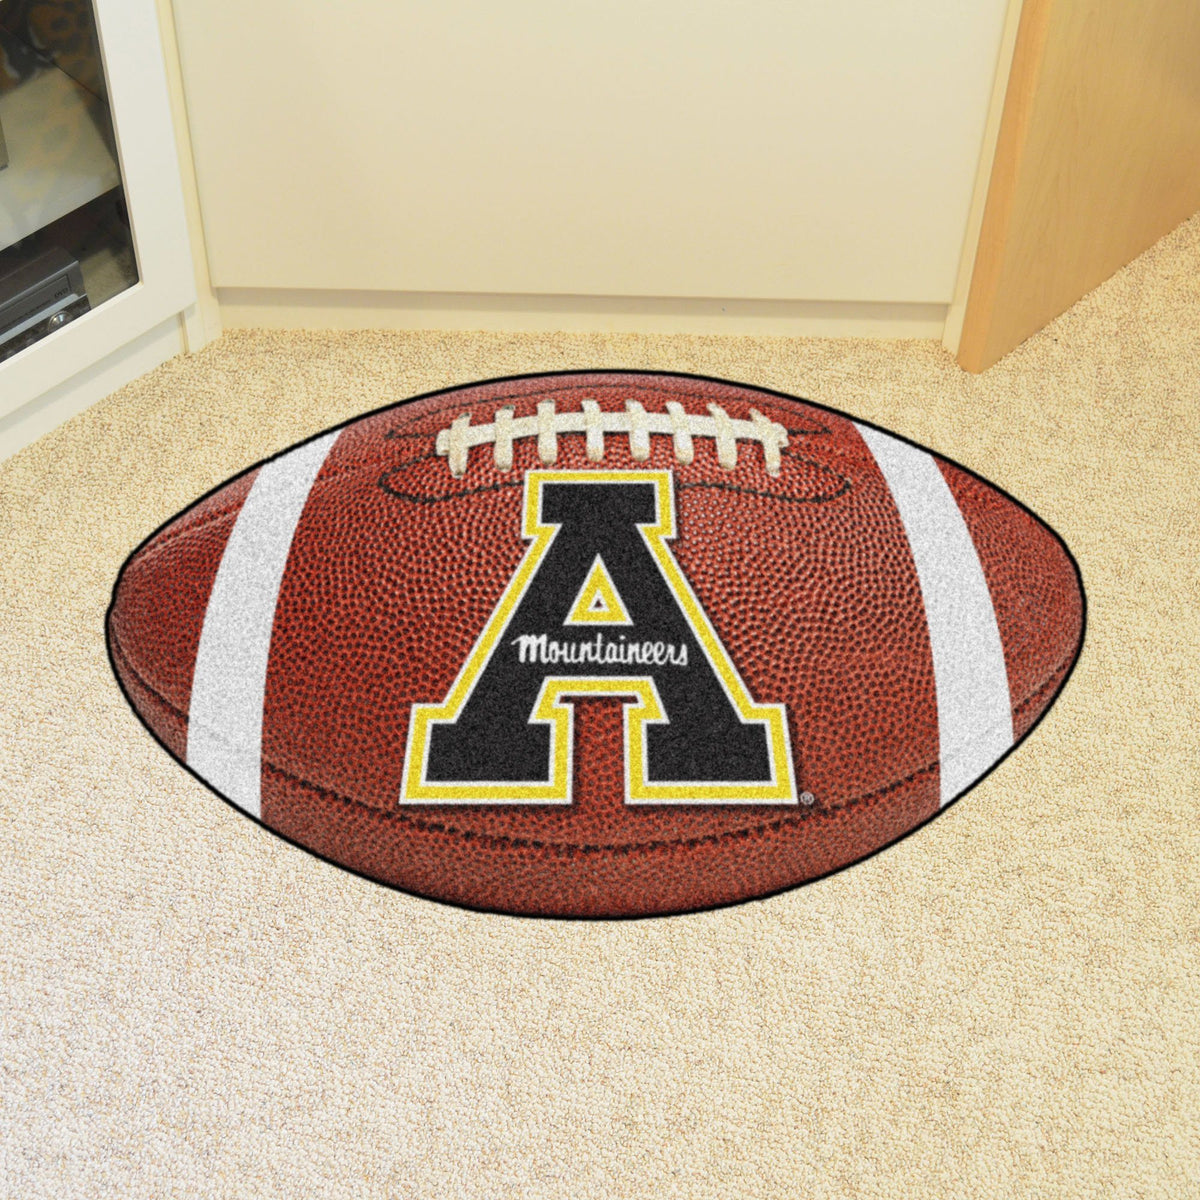 Collegiate - Football Mat: A - K Collegiate Mats, Rectangular Mats, Football Mat, Collegiate, Home Fan Mats Appalachian State